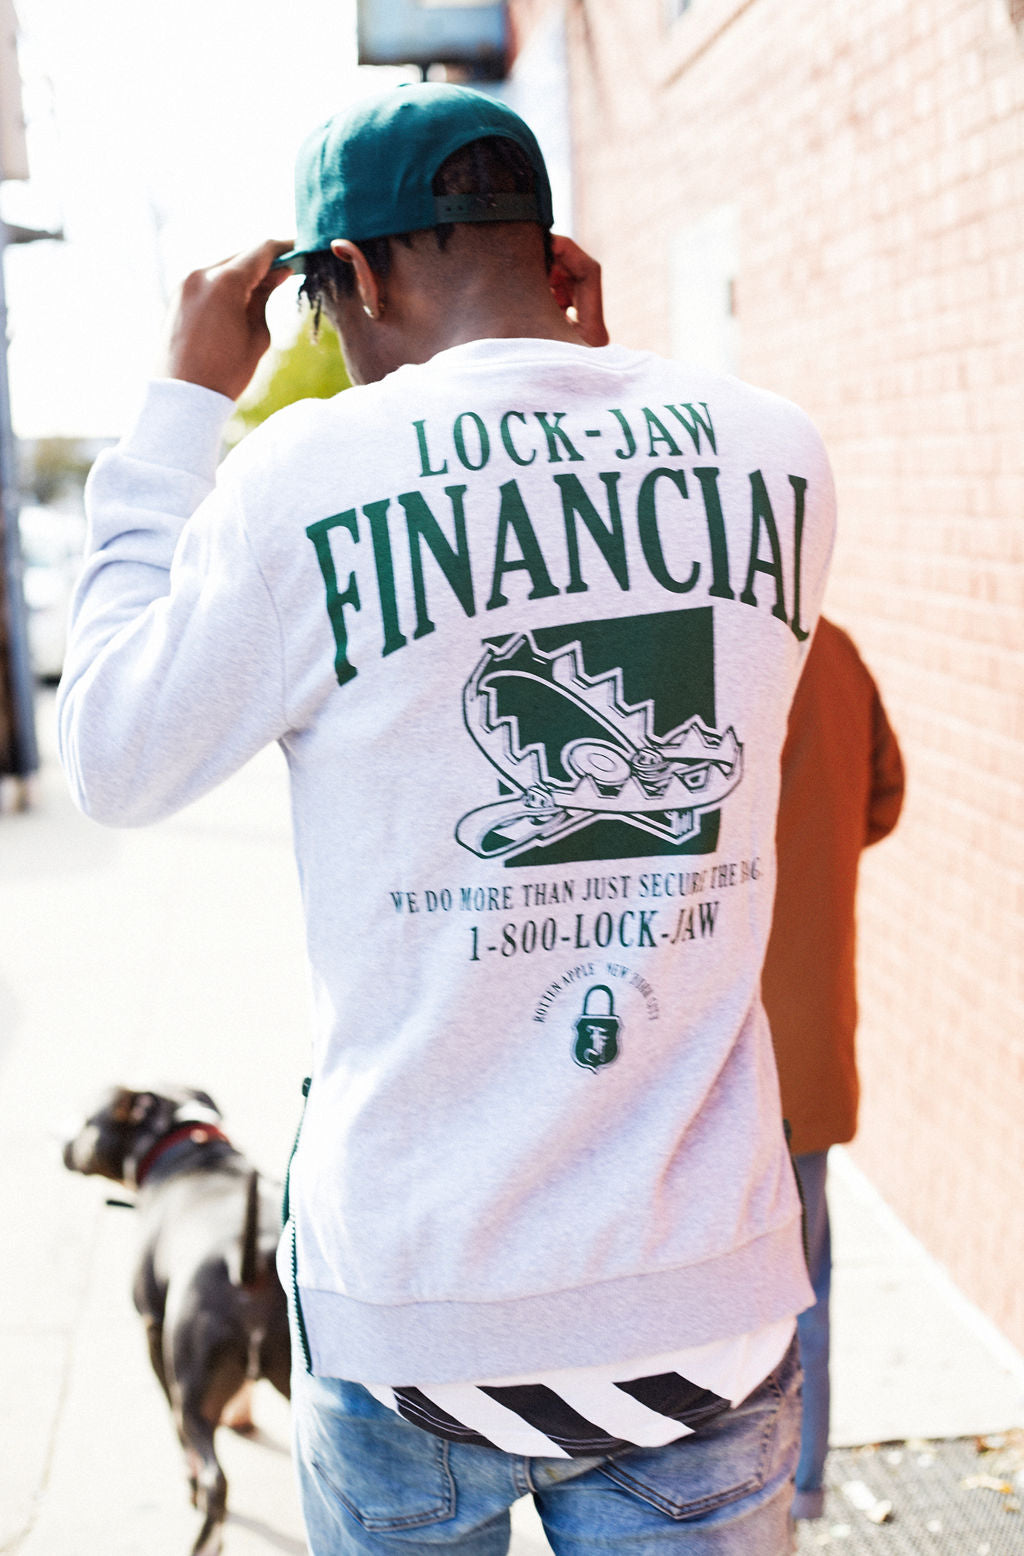 Lock Jaw Financial